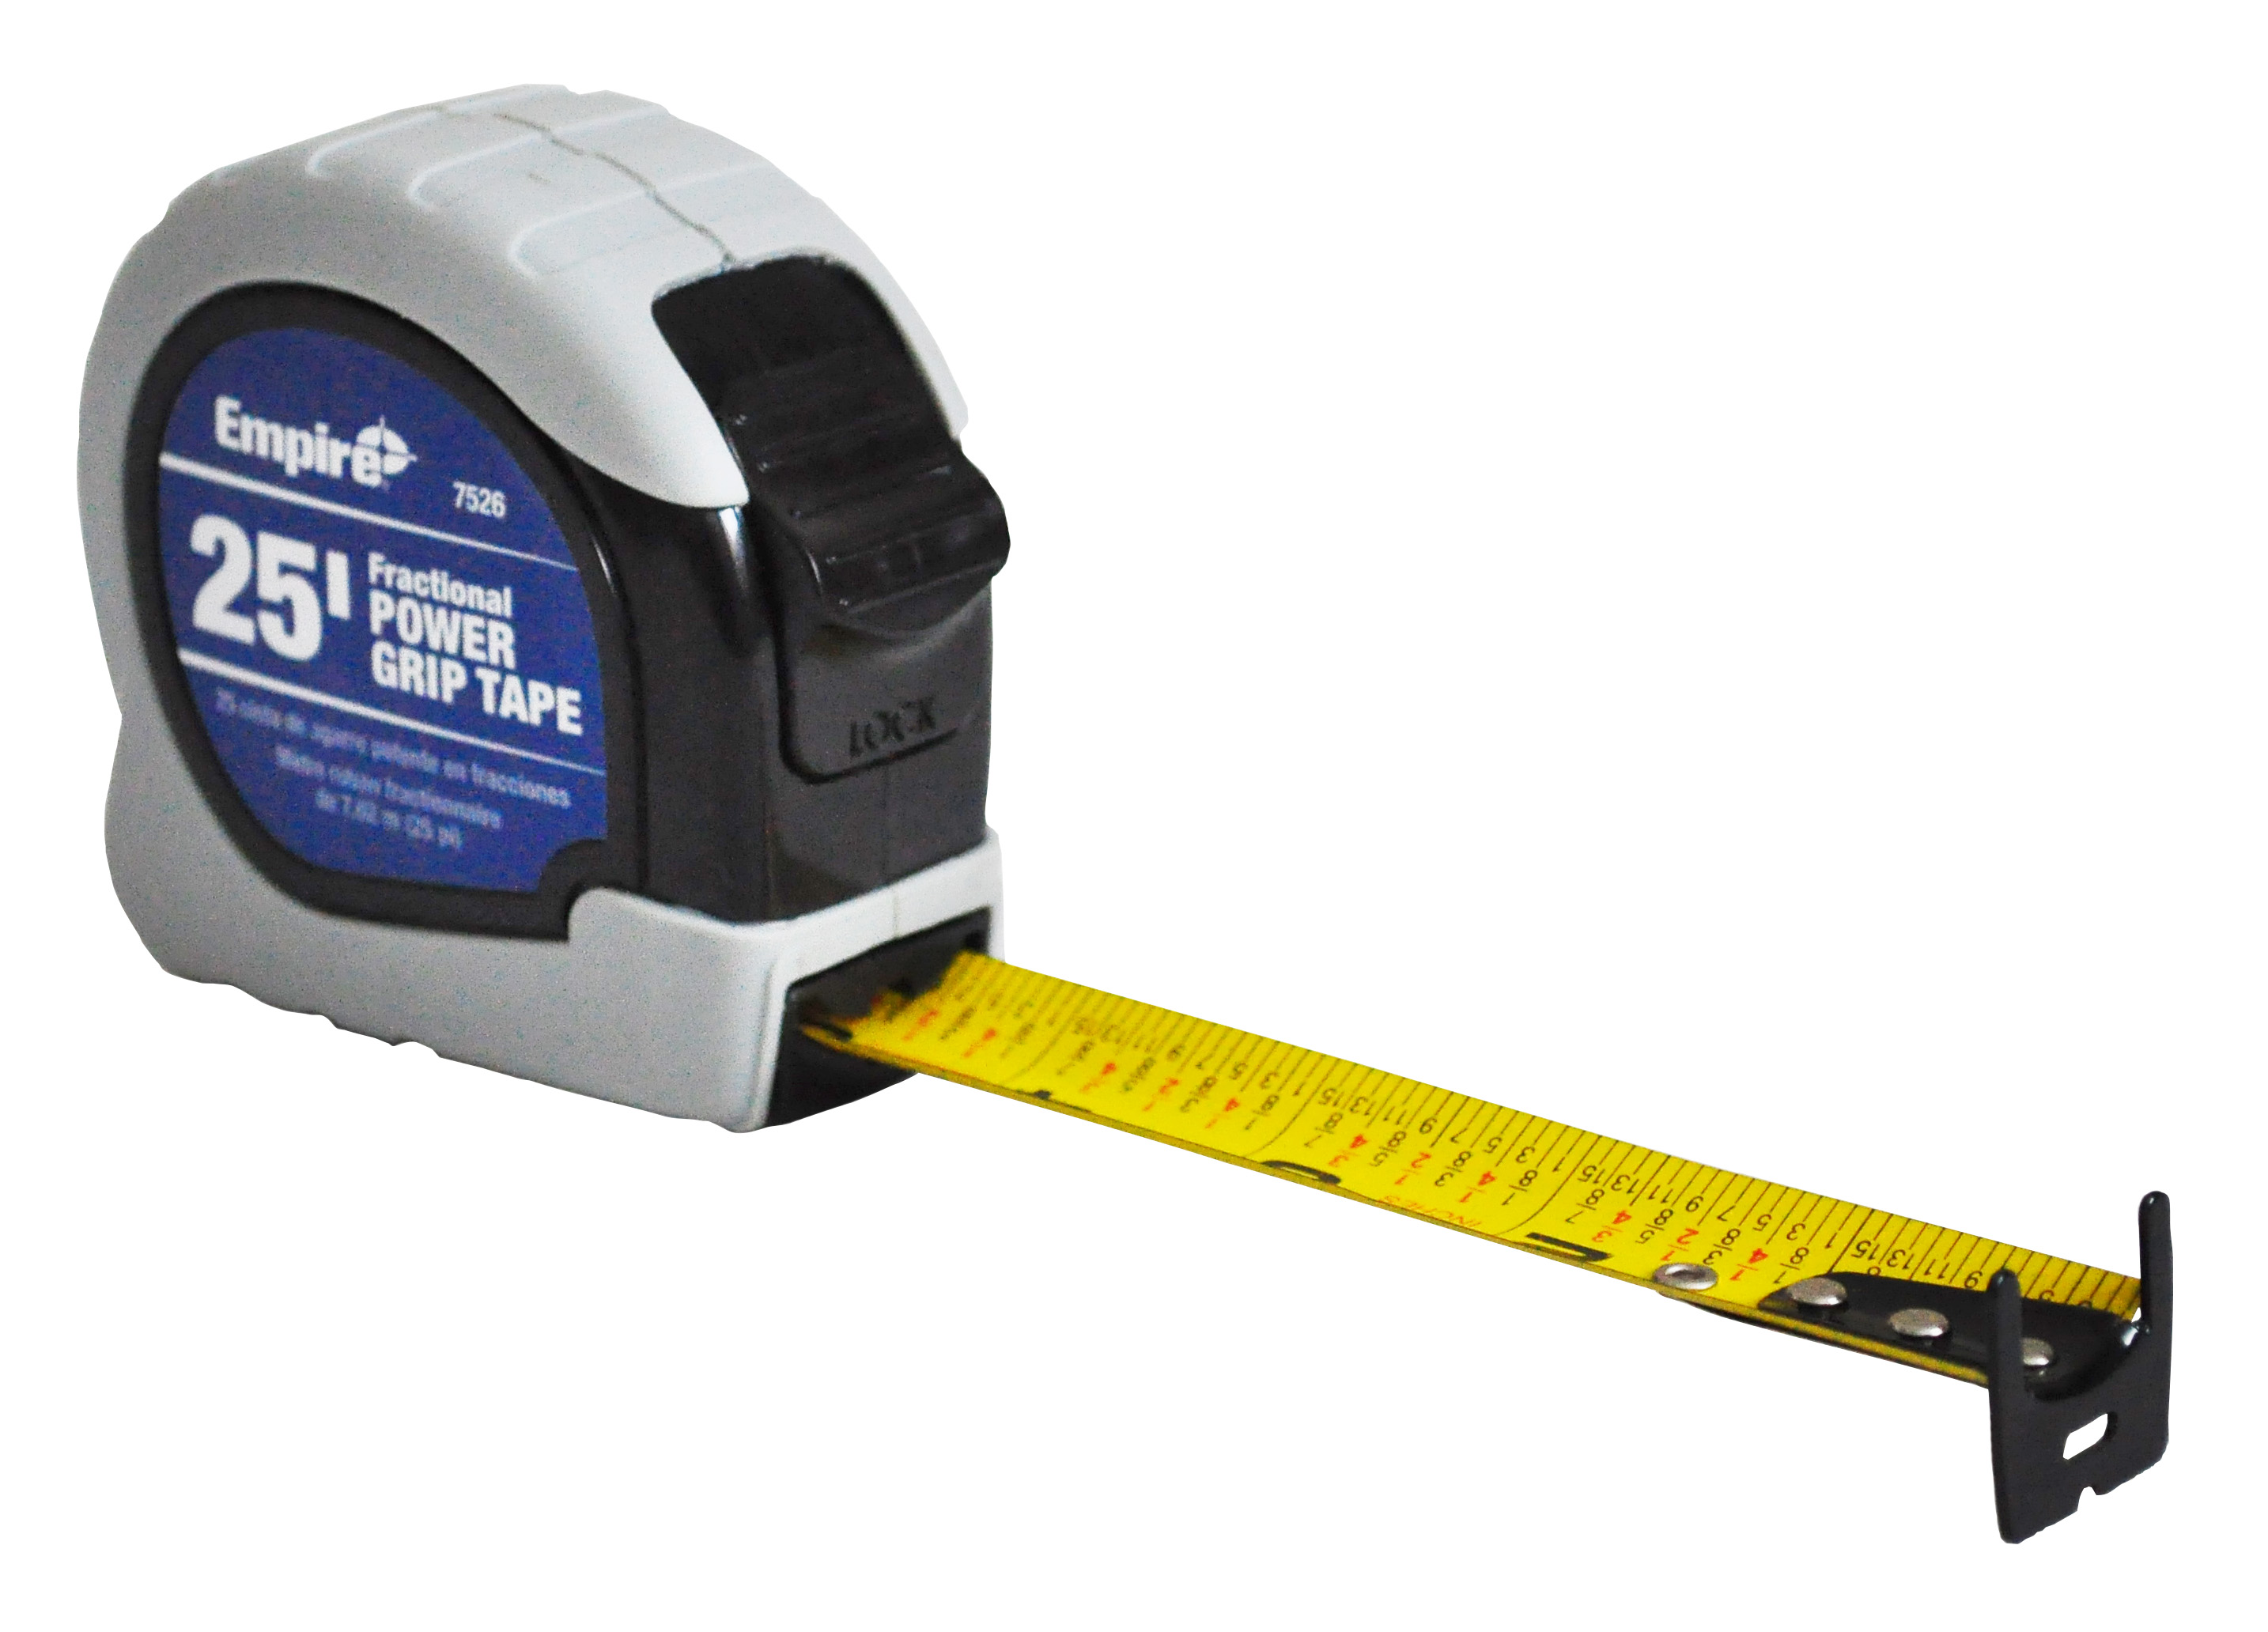 Milwaukee® 7526 Powergrip Measuring Tape With Belt Clip, 25 ft L x 1 in W Blade, Steel Blade, Imperial Measuring System, 1/16 in Graduation